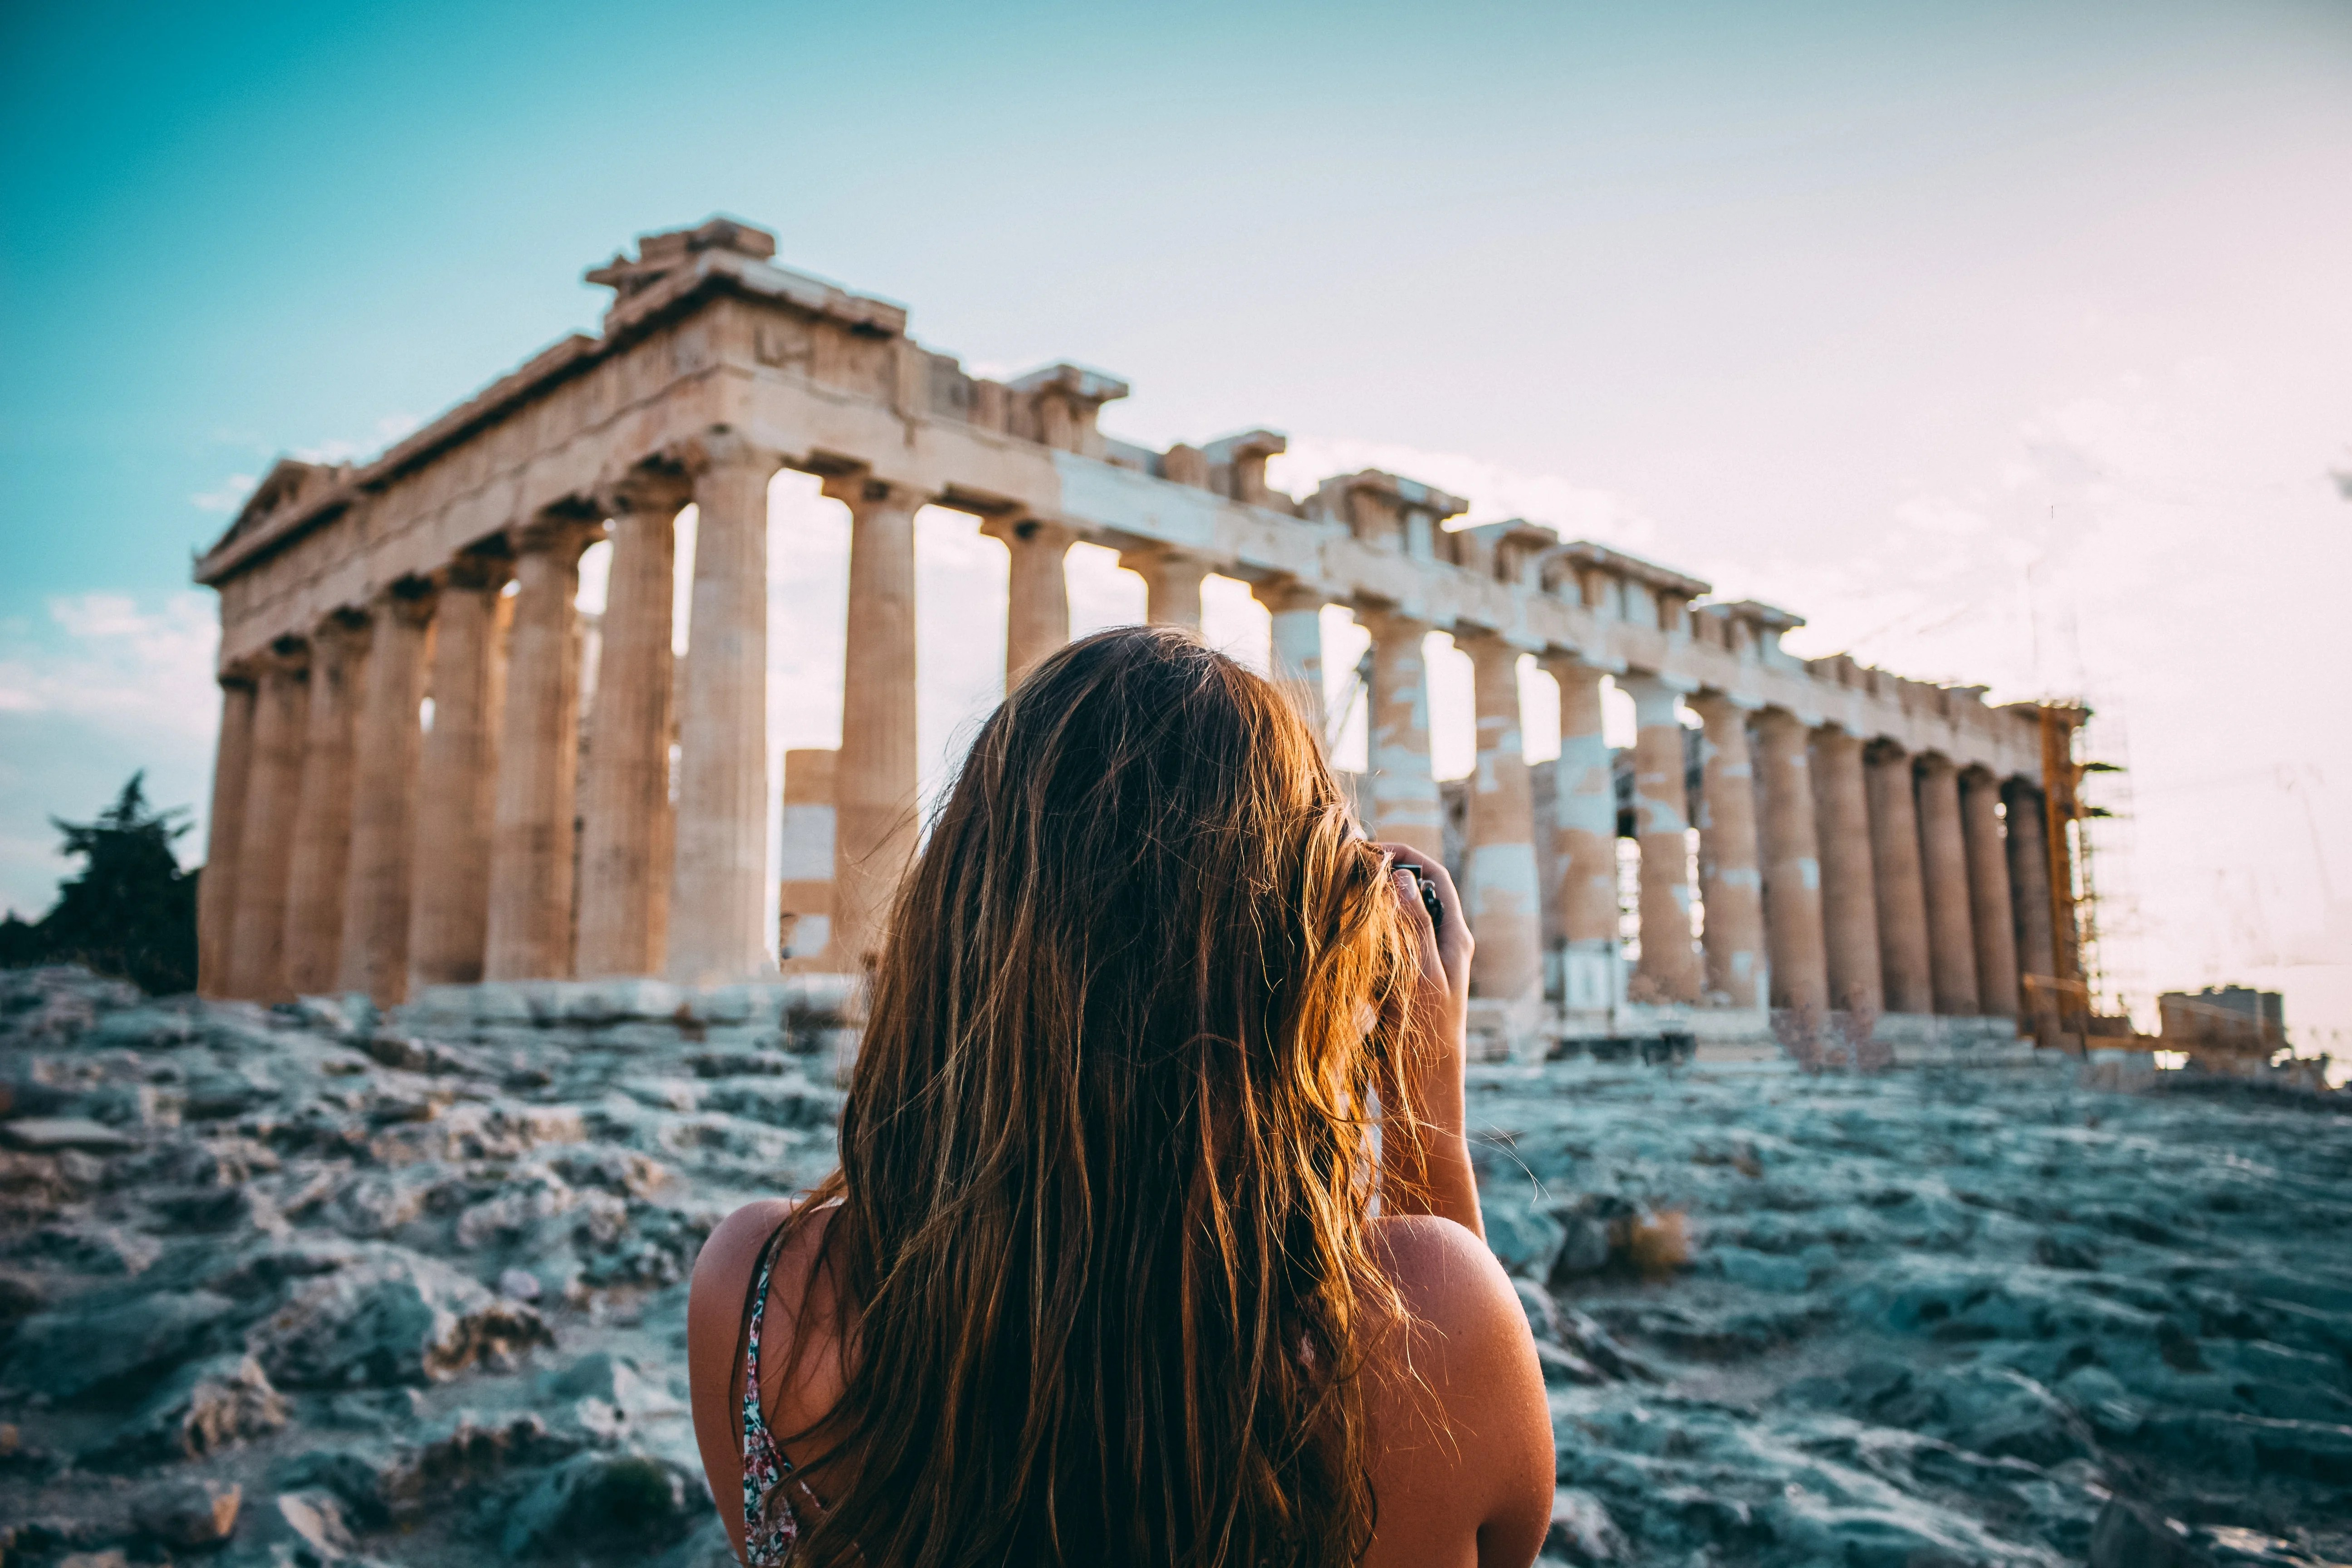 Deal Alert: Flights From NYC to Greece Dropped to $367 Round-Trip